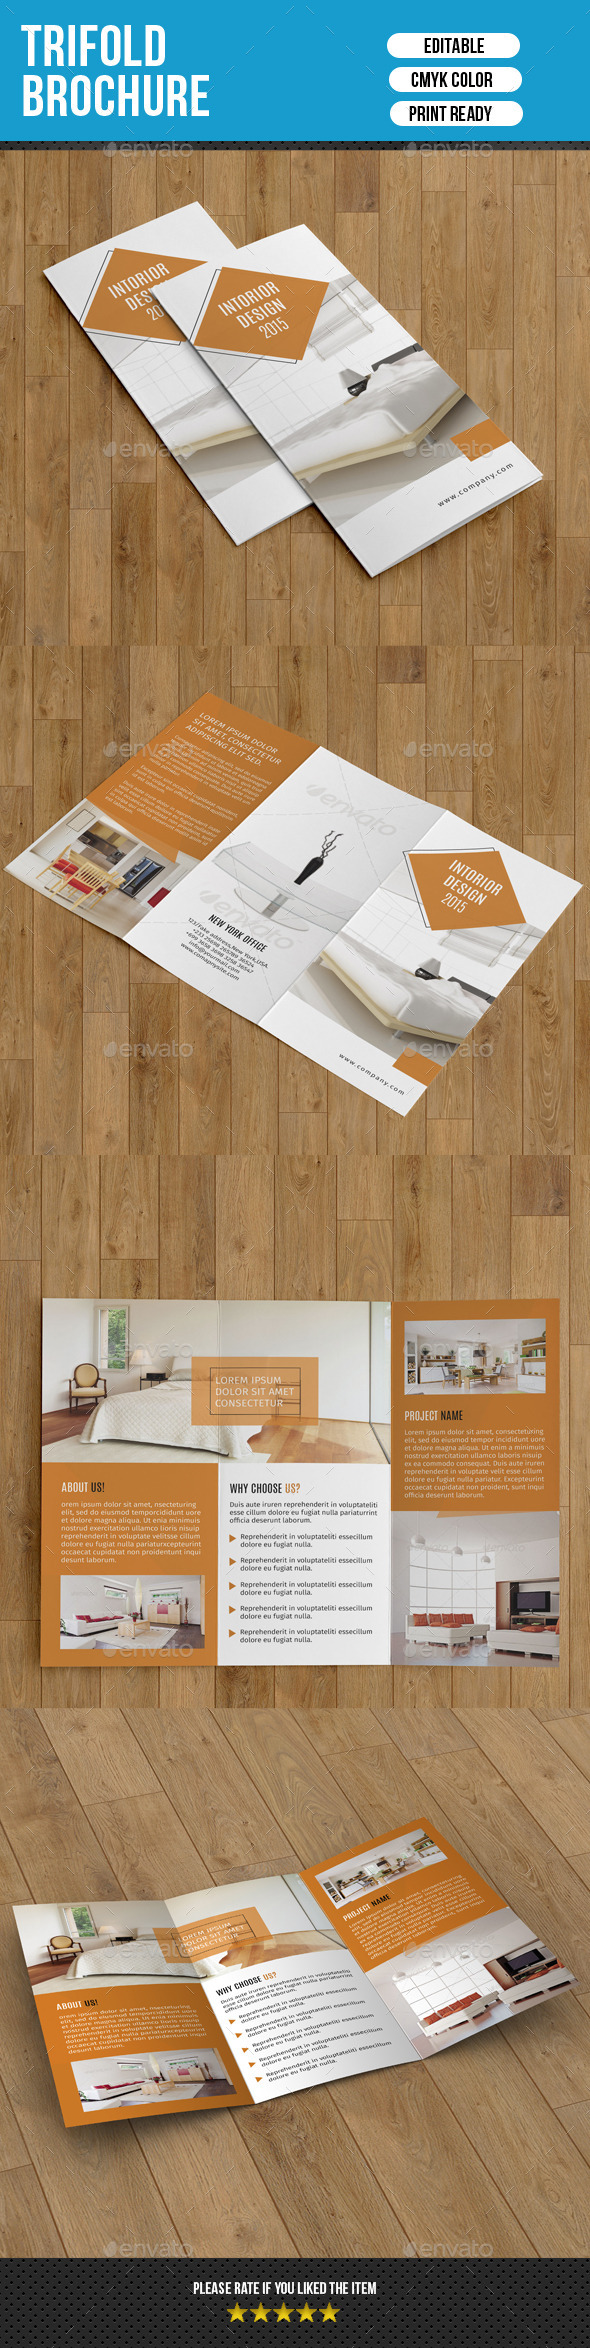 GraphicRiver Trifold Brochure for Interior Design-V218 10103005